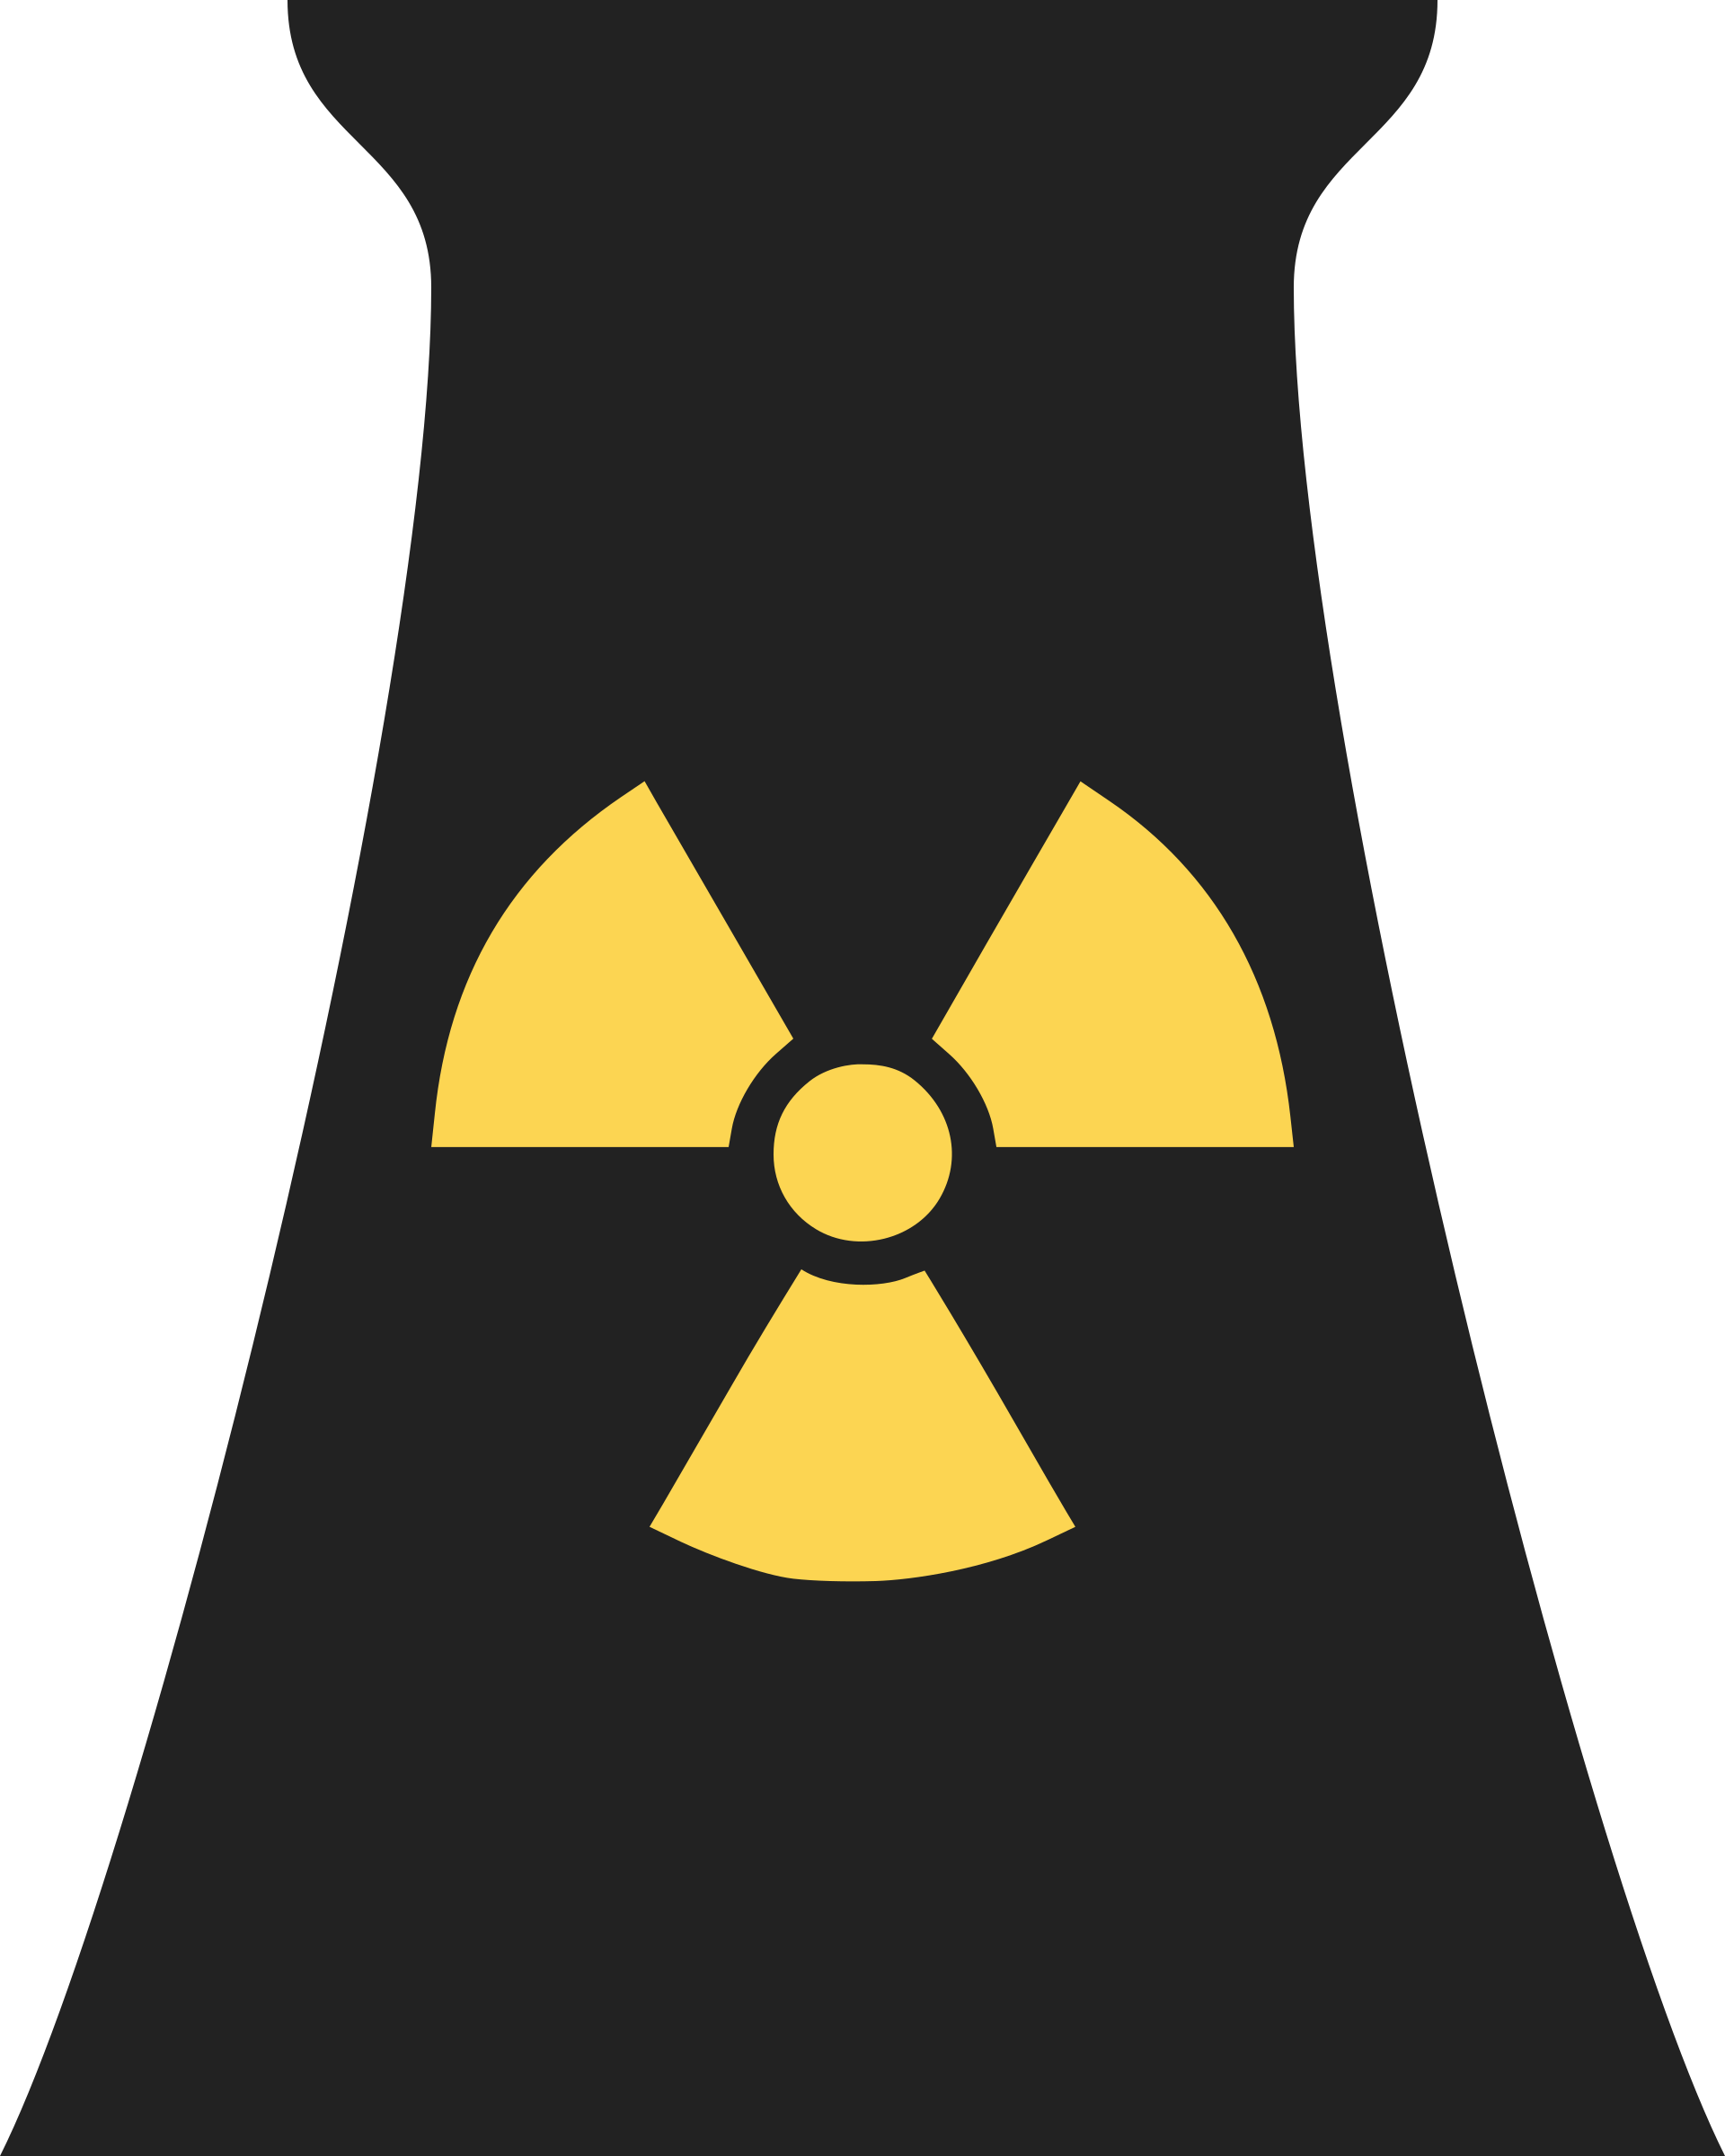 Nuclear Power Plant Symbol 1 by qubodup